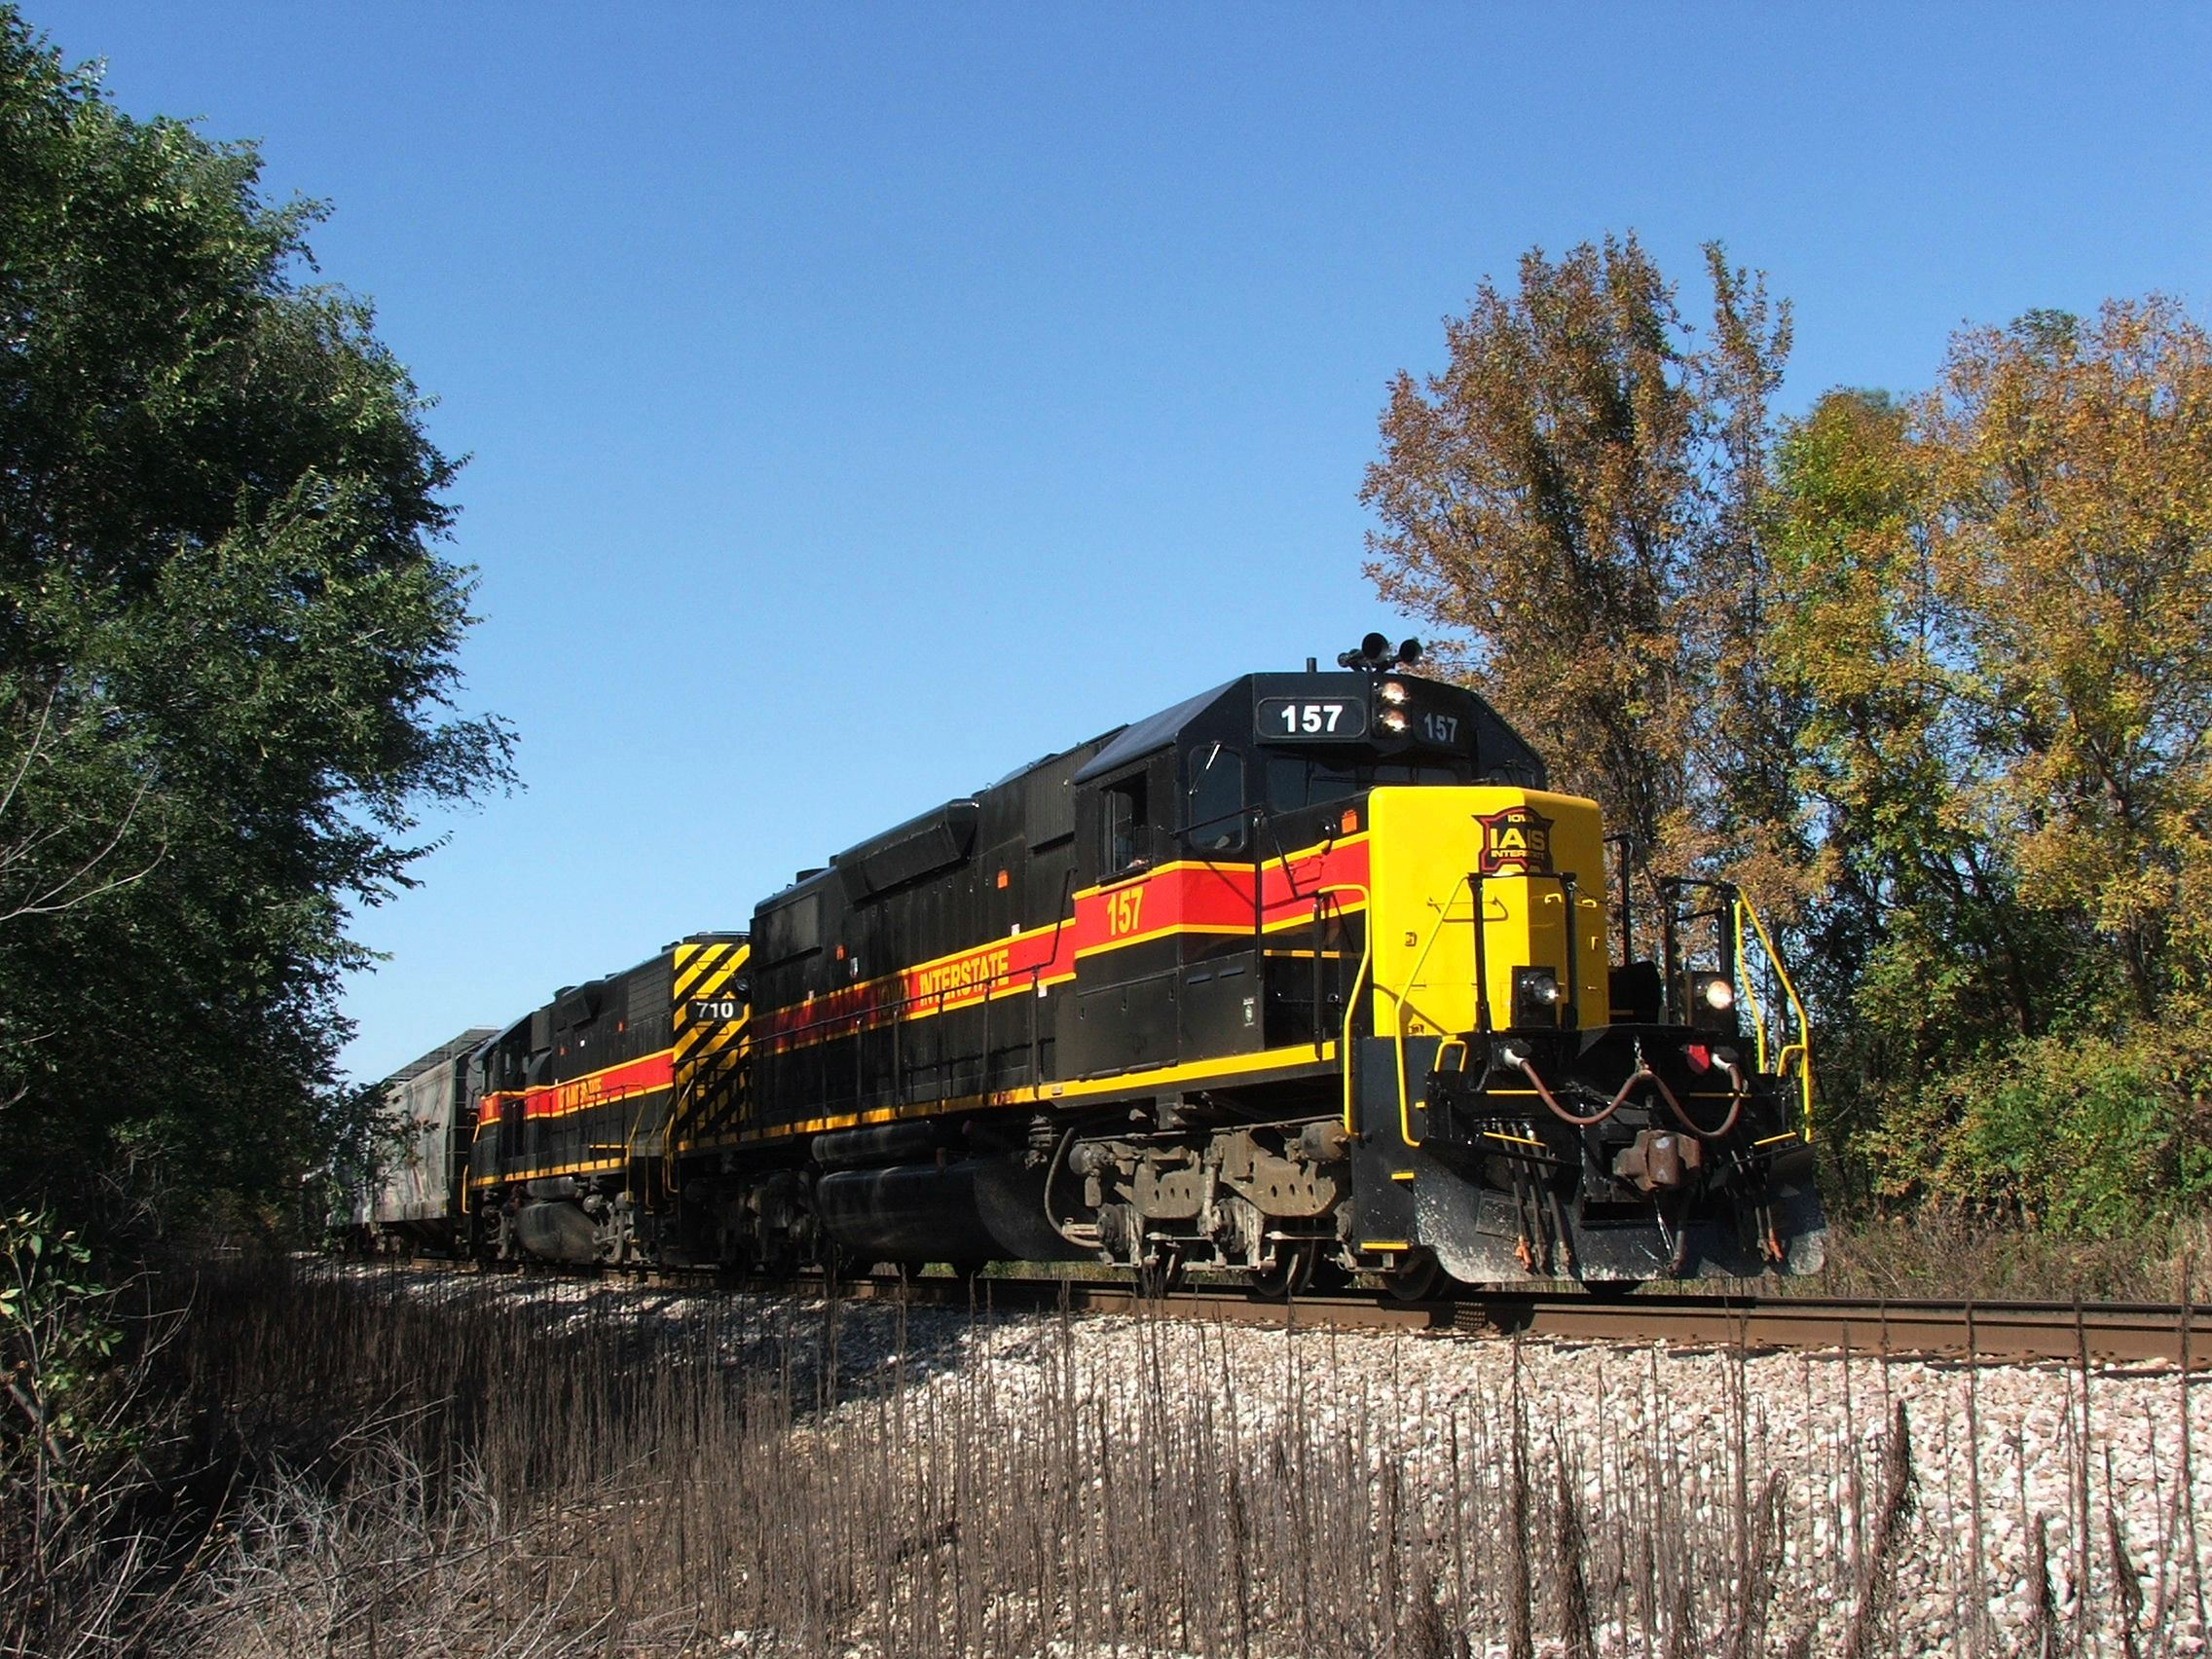 BUSW holds the main while waiting for BNSF clearance through Colona. This is where we ended our chase, unfortunetaly, the ICE was running their fall foliage special in Iowa and we had to get going!